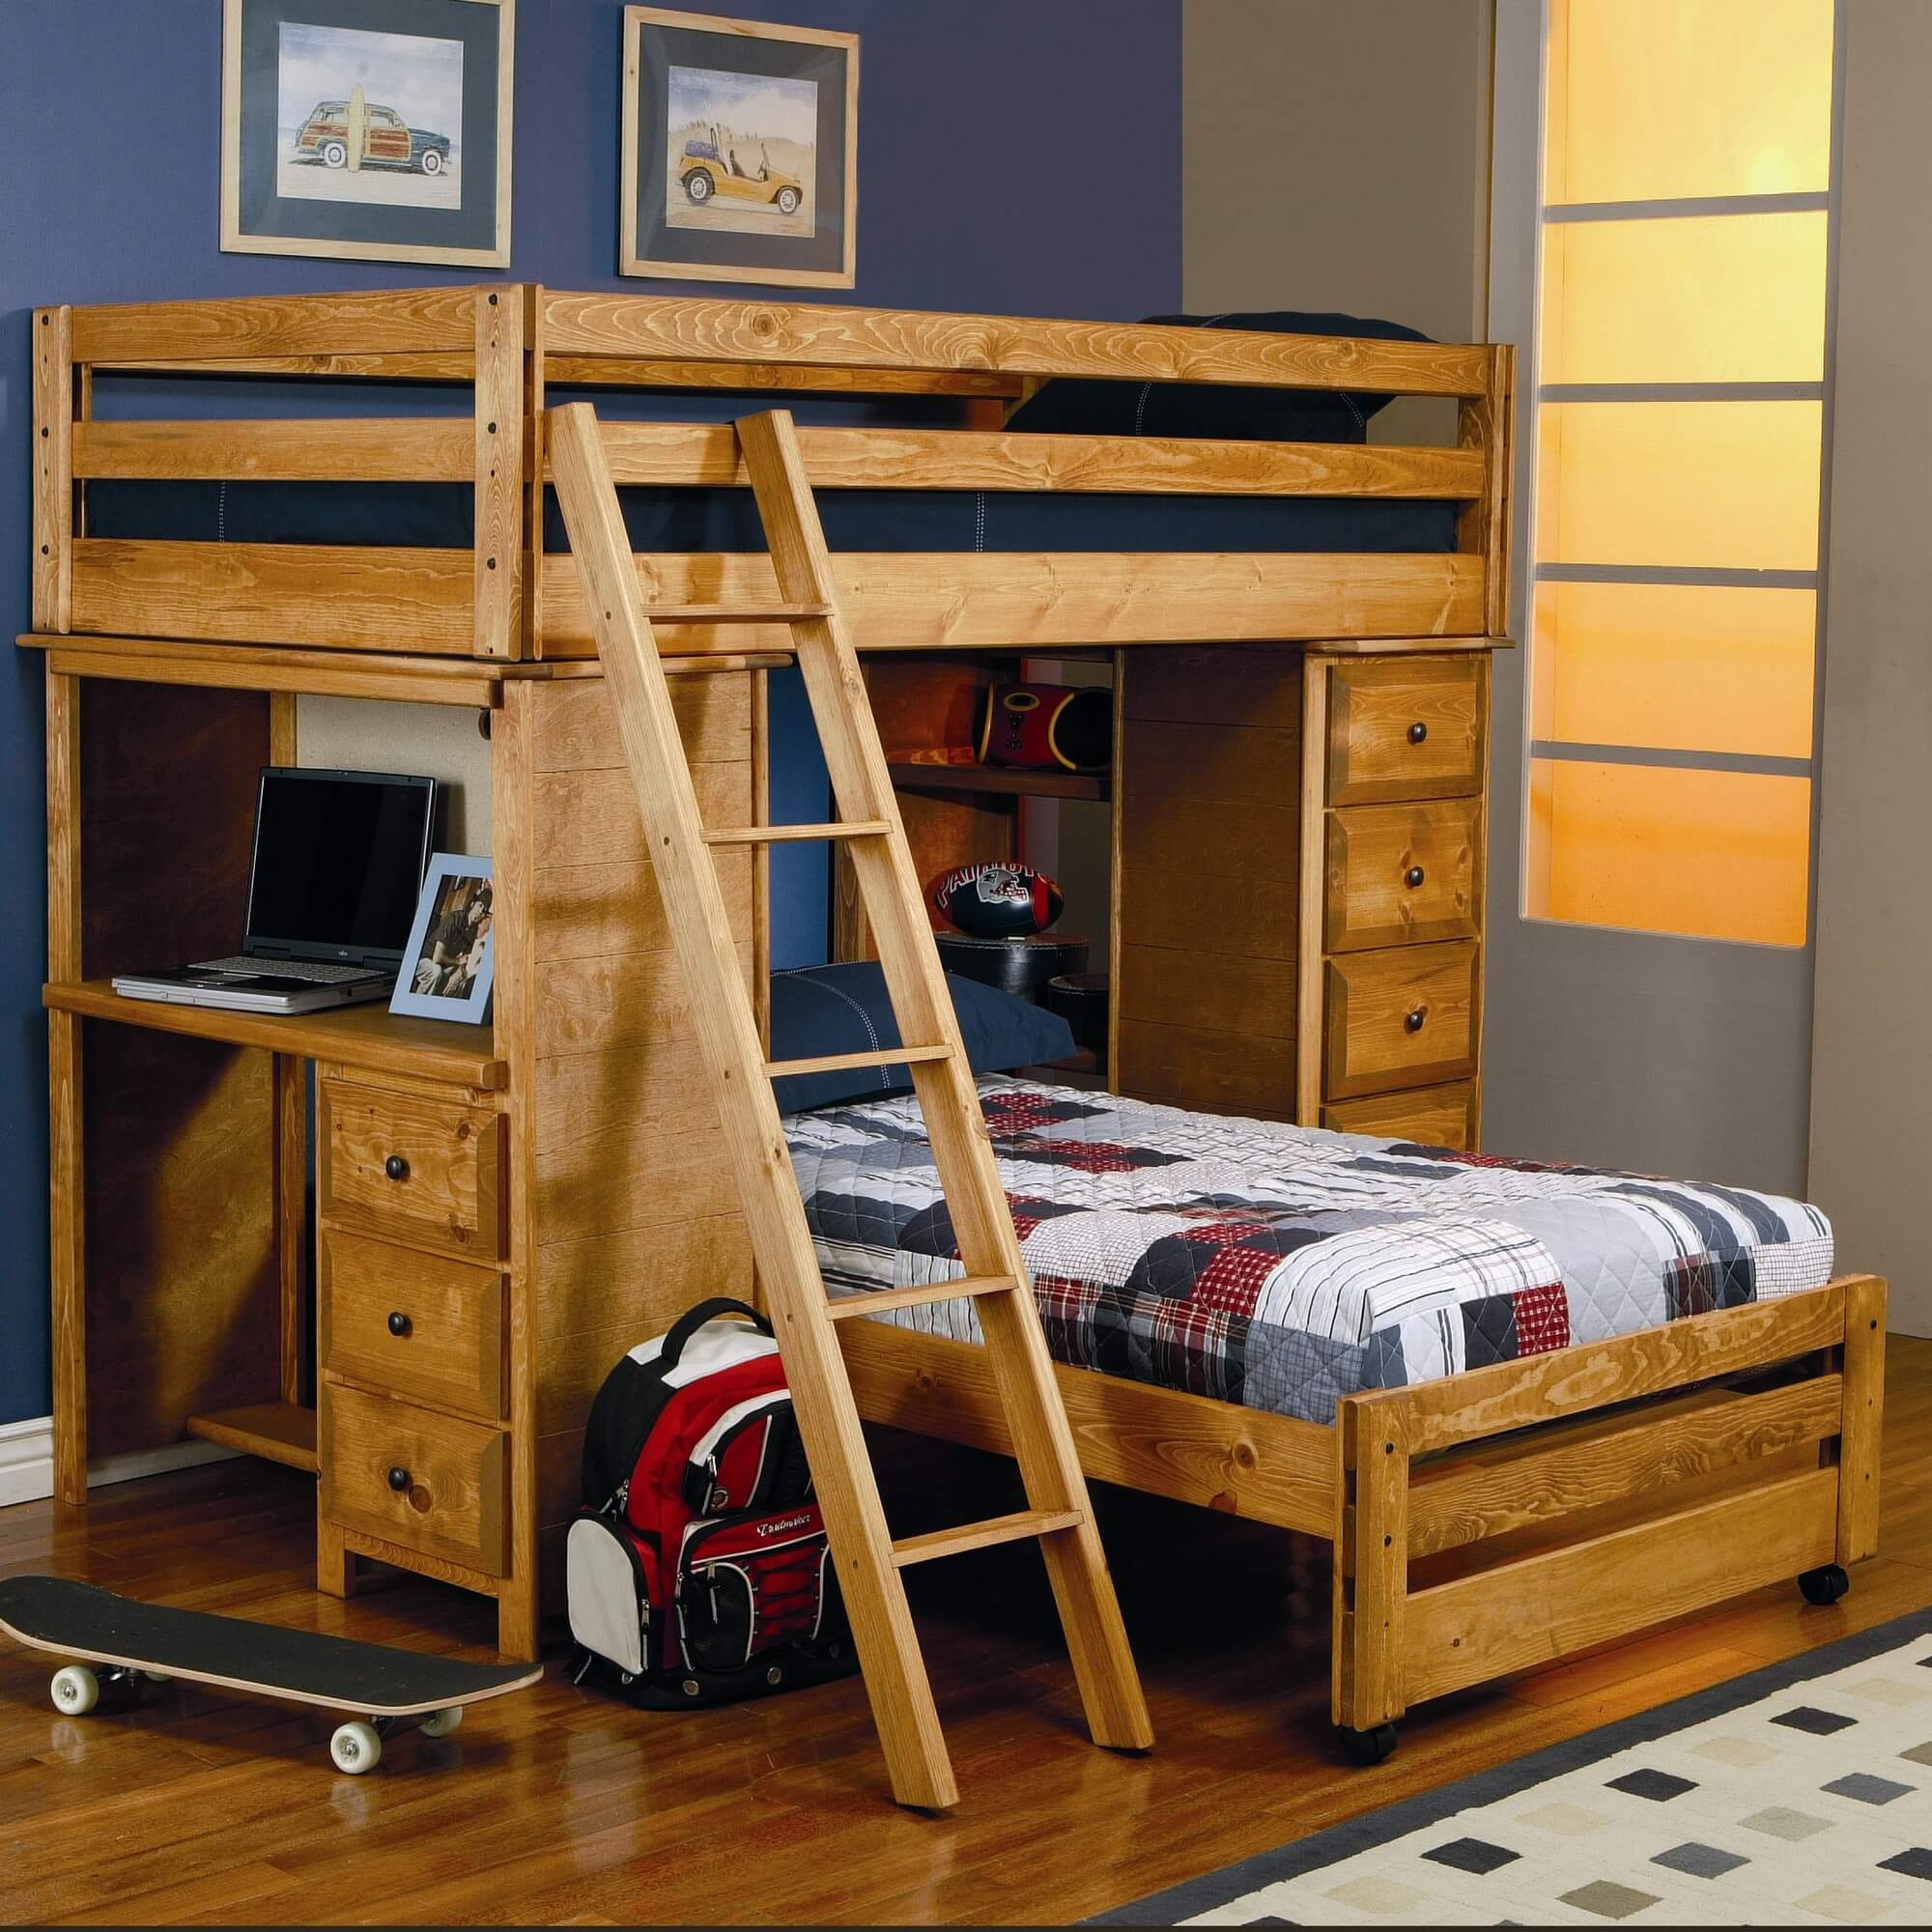 Bunk bed with stairs and desk plans - This Solid Pine L Shaped Bunk With A Honey Finish Is A Twin Over Twin